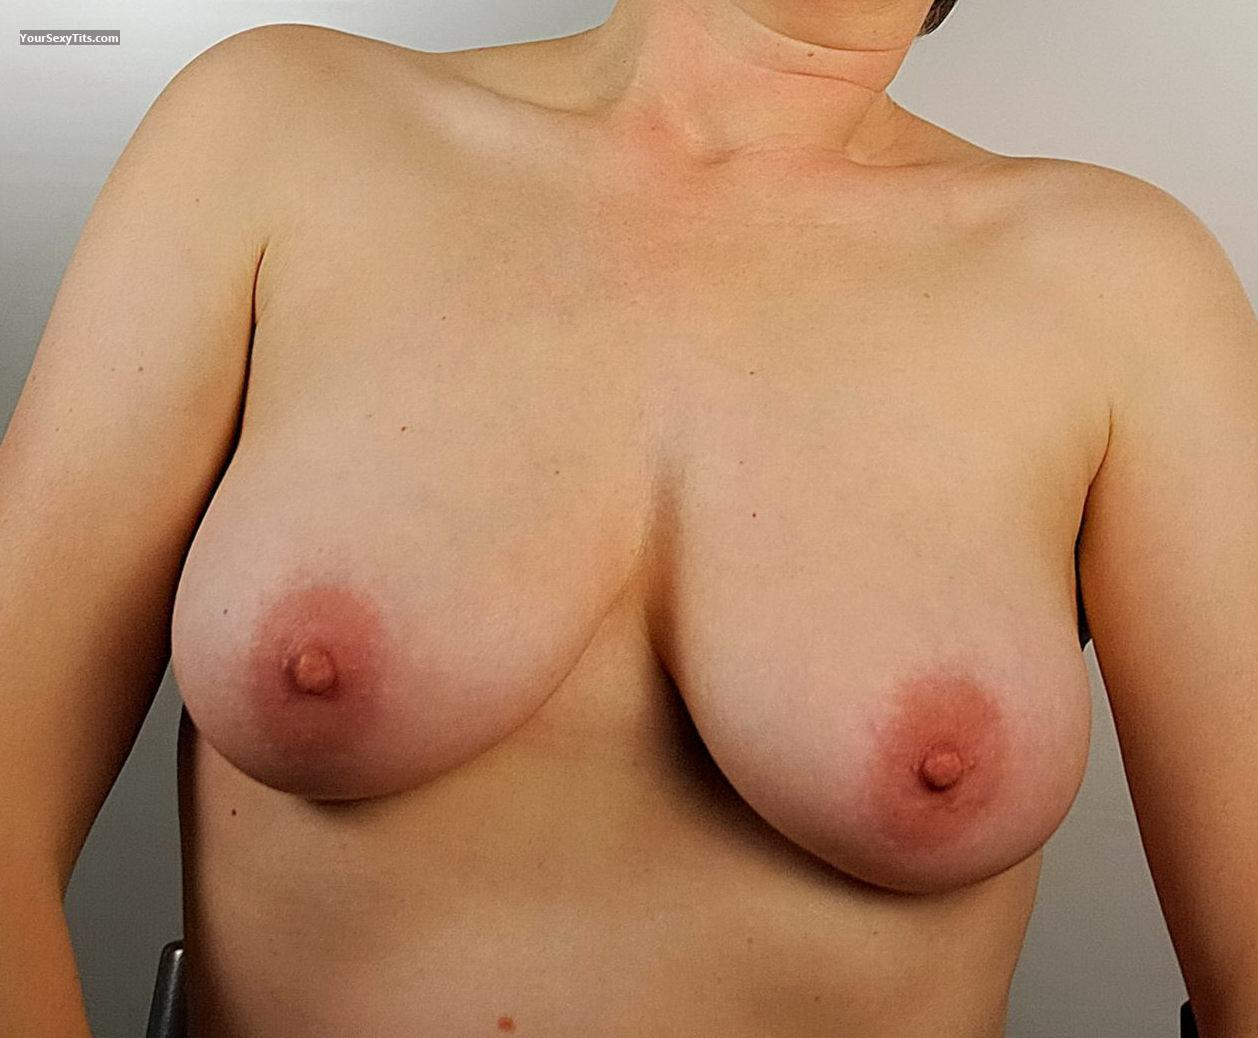 Tit Flash: My Medium Tits (Selfie) - Ringo from Netherlands Antilles